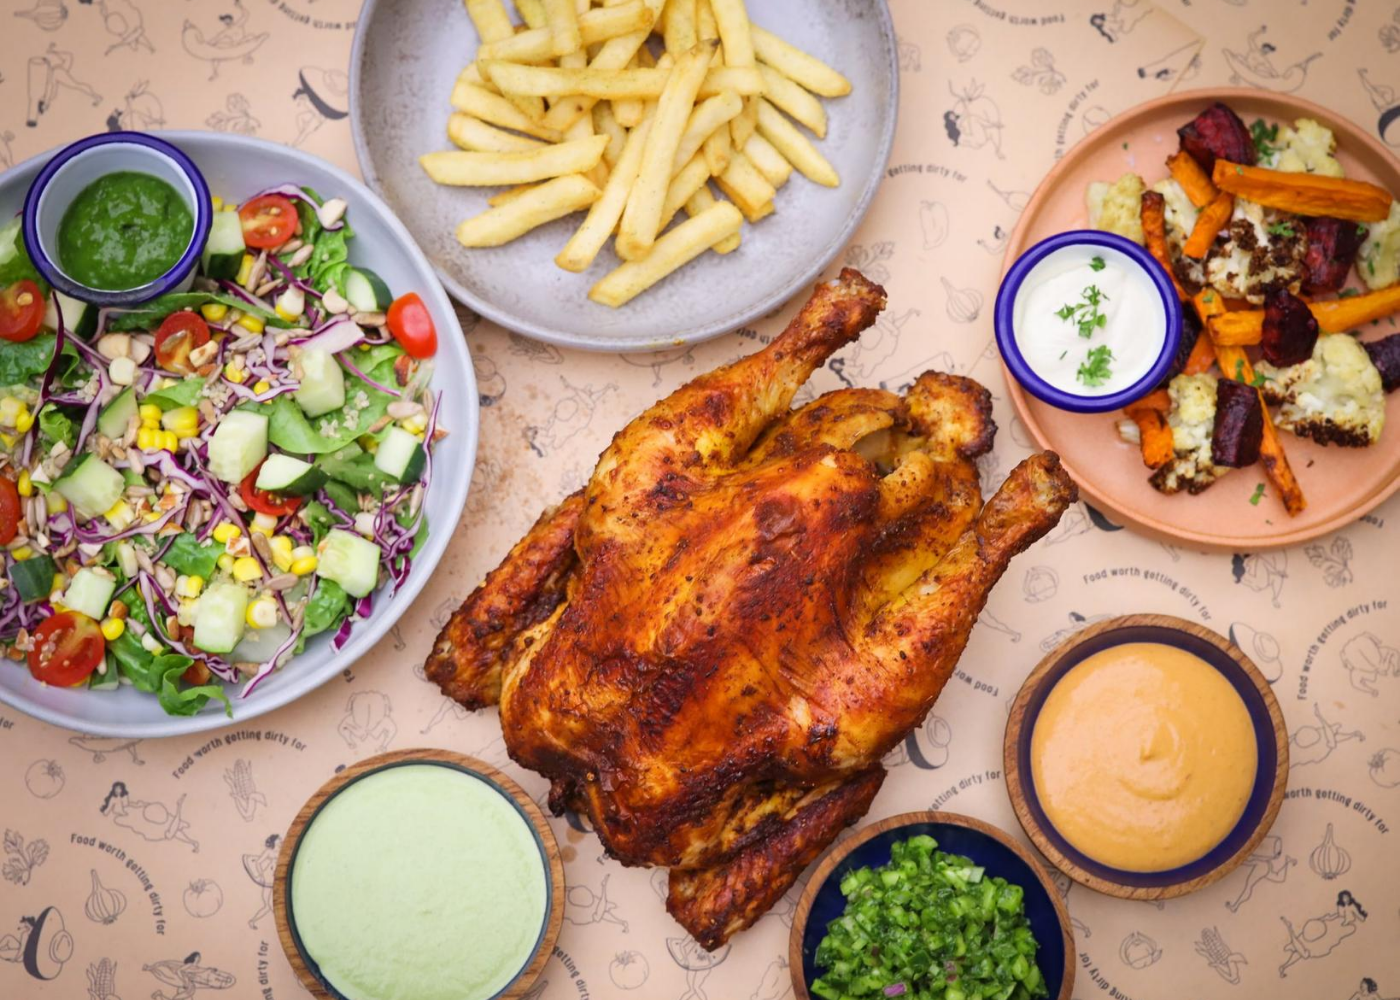 Restaurant deals: Food delivery promo codes, takeaway discounts and more